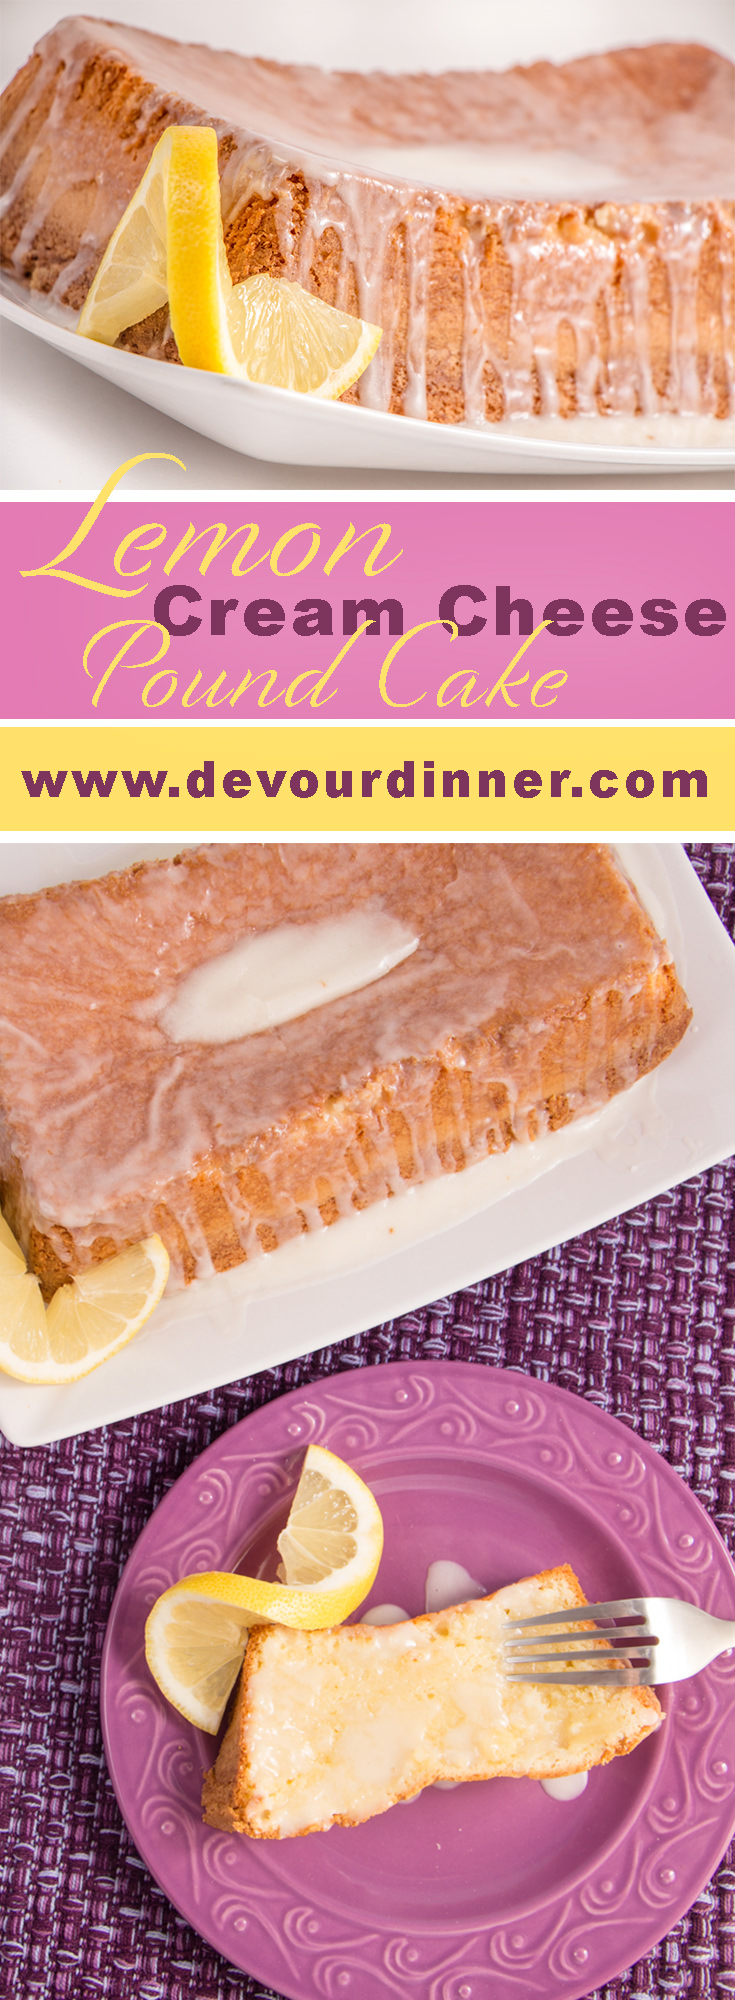 Lemon Cream Cheese Pound Cake! Try out this easy dessert! Baked Lemon Cream Cheese Pound Cake bakes for about an hour and is velvety just as a pound cake should be. #dessertrecipes #dessert #poundcake #Recipe #recipes #food #foodie #treat #easyrecipe #bake #Bakeddessert #Lemon #Lemonpoundcake #yum #yummy #easydessertrecipe #foodiefriday